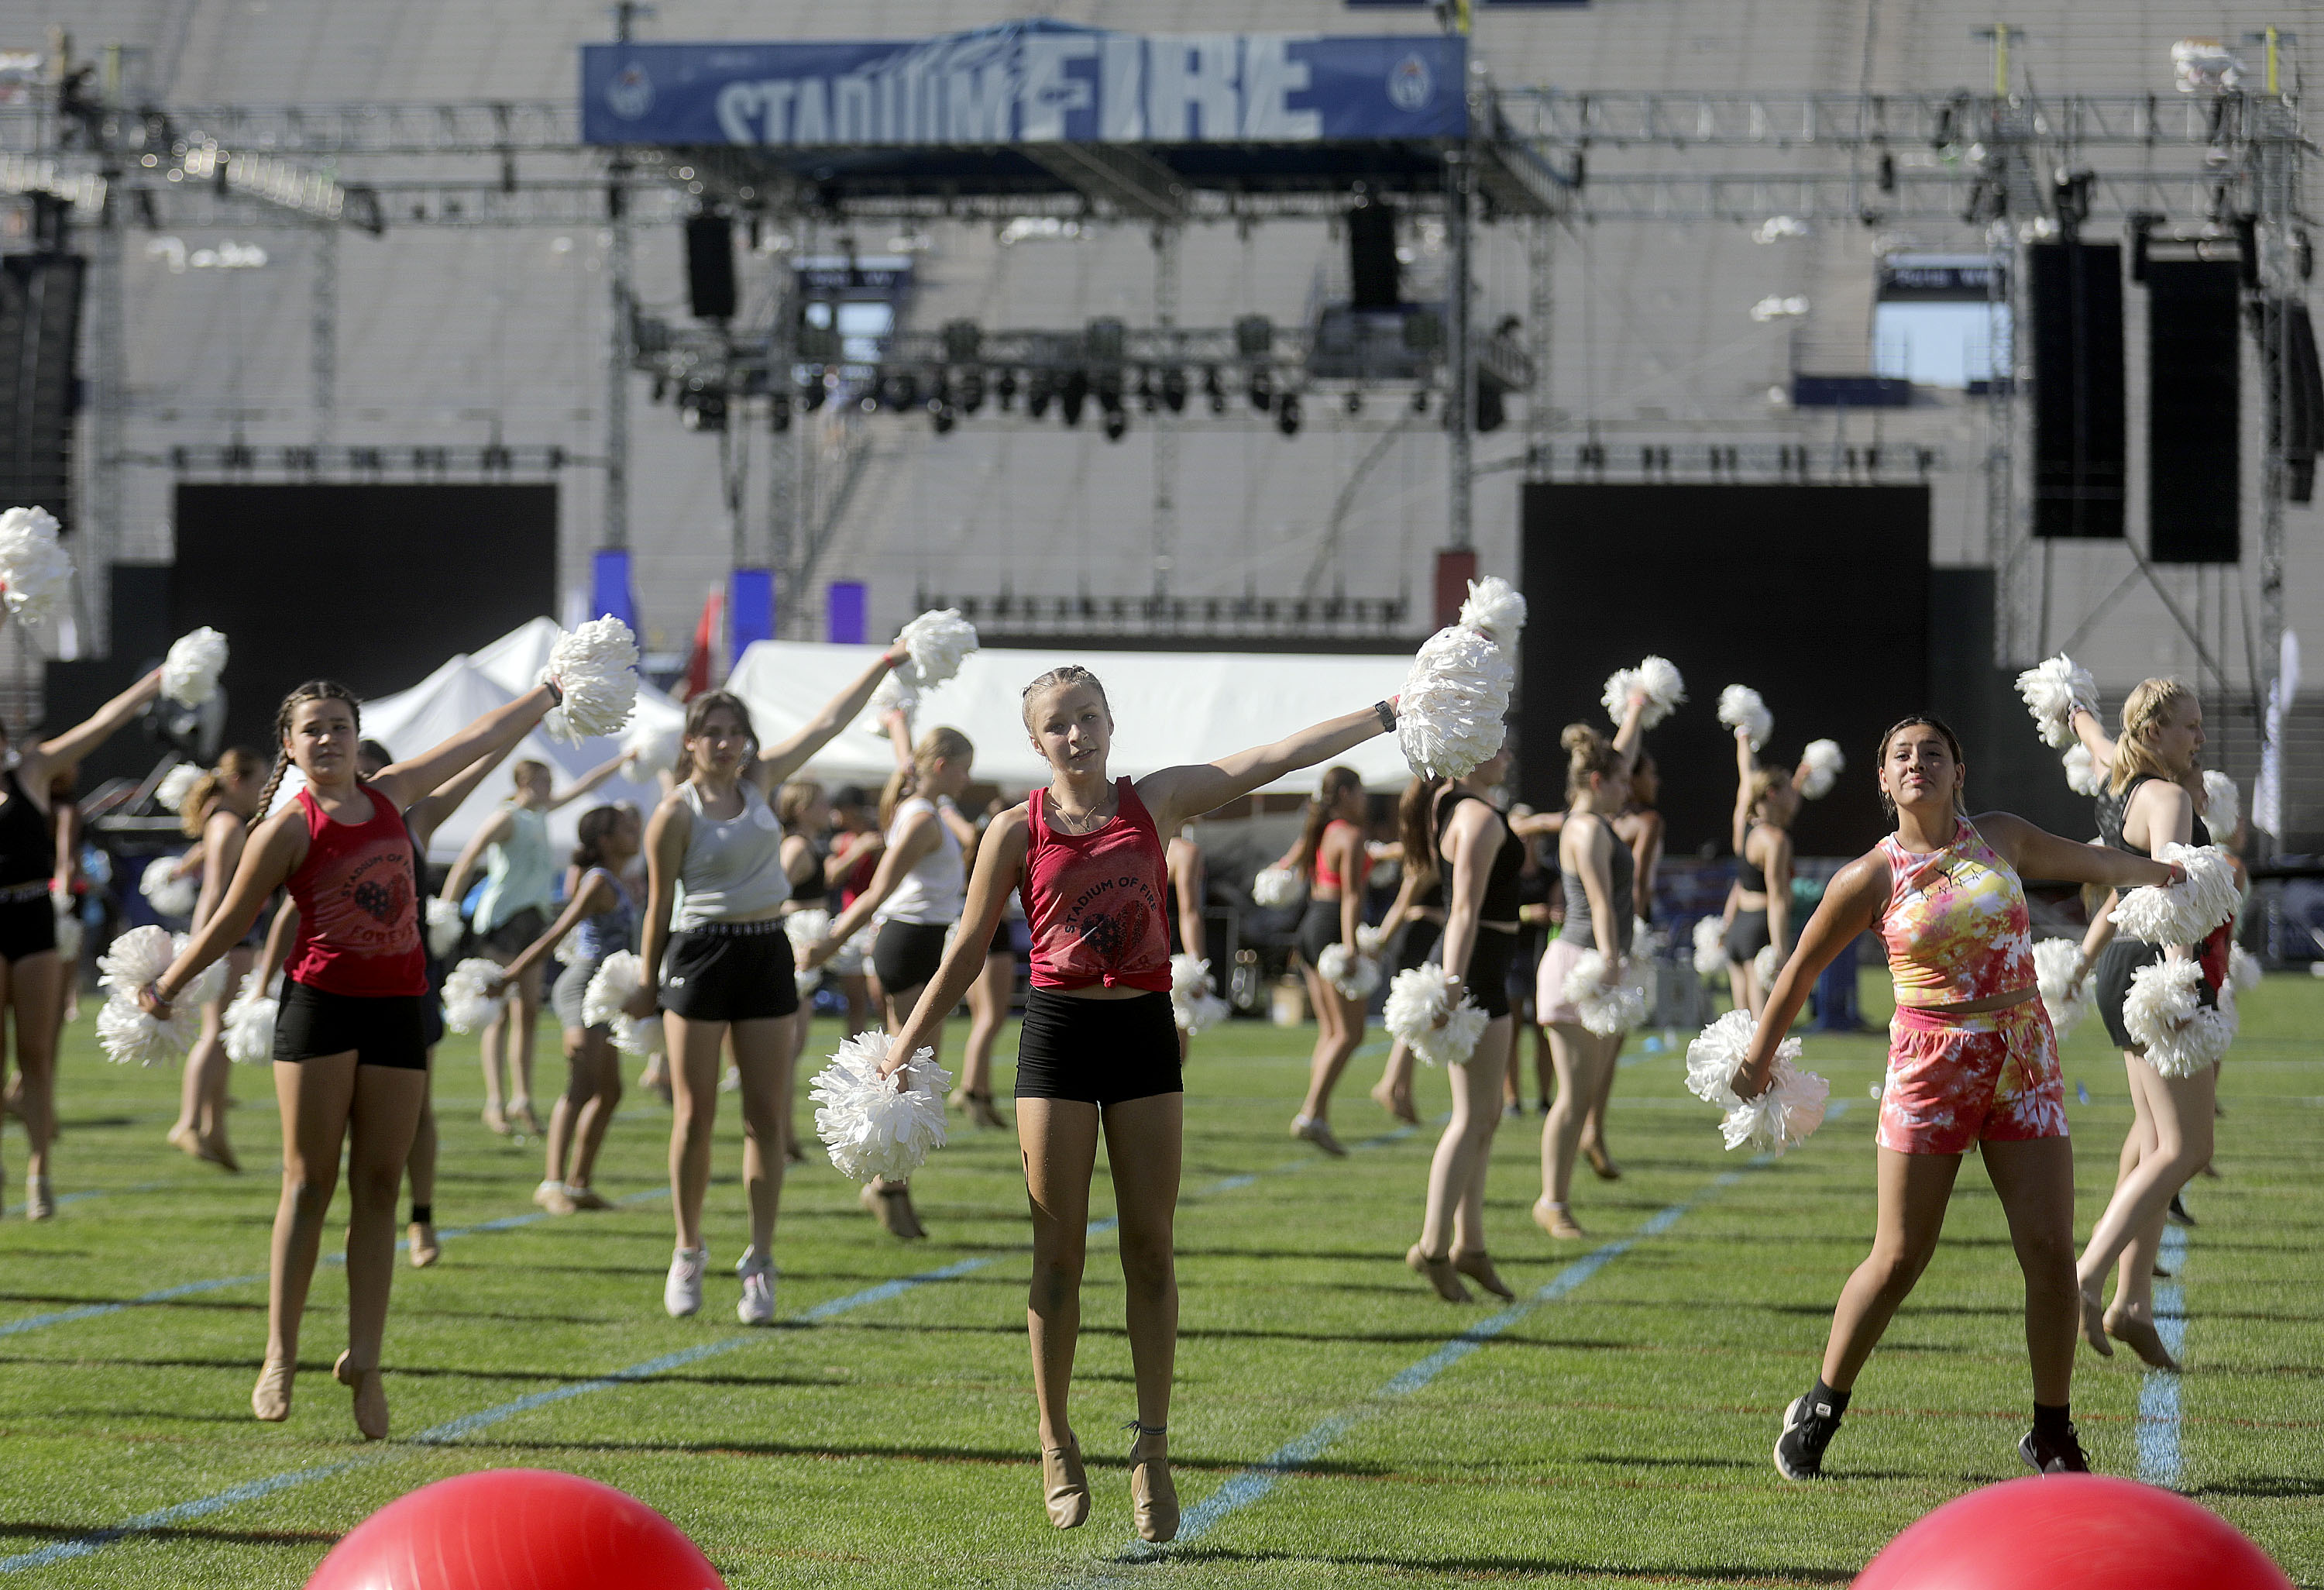 Stadium of Fire dancers practice at Provo's LaVell Edwards Stadium in summer 2021.